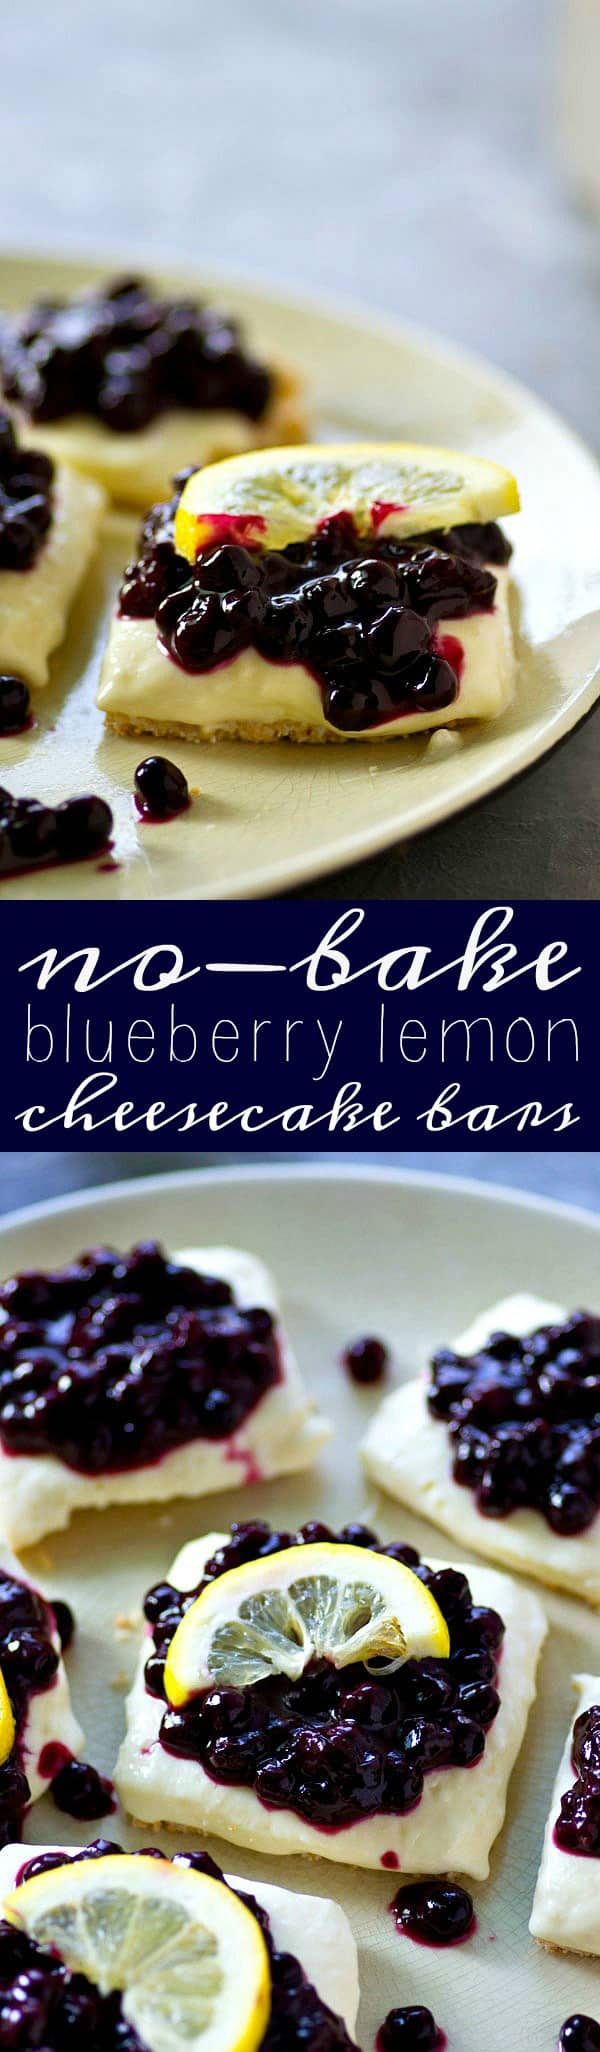 No-Bake Blueberry Lemon Cheesecake Bars